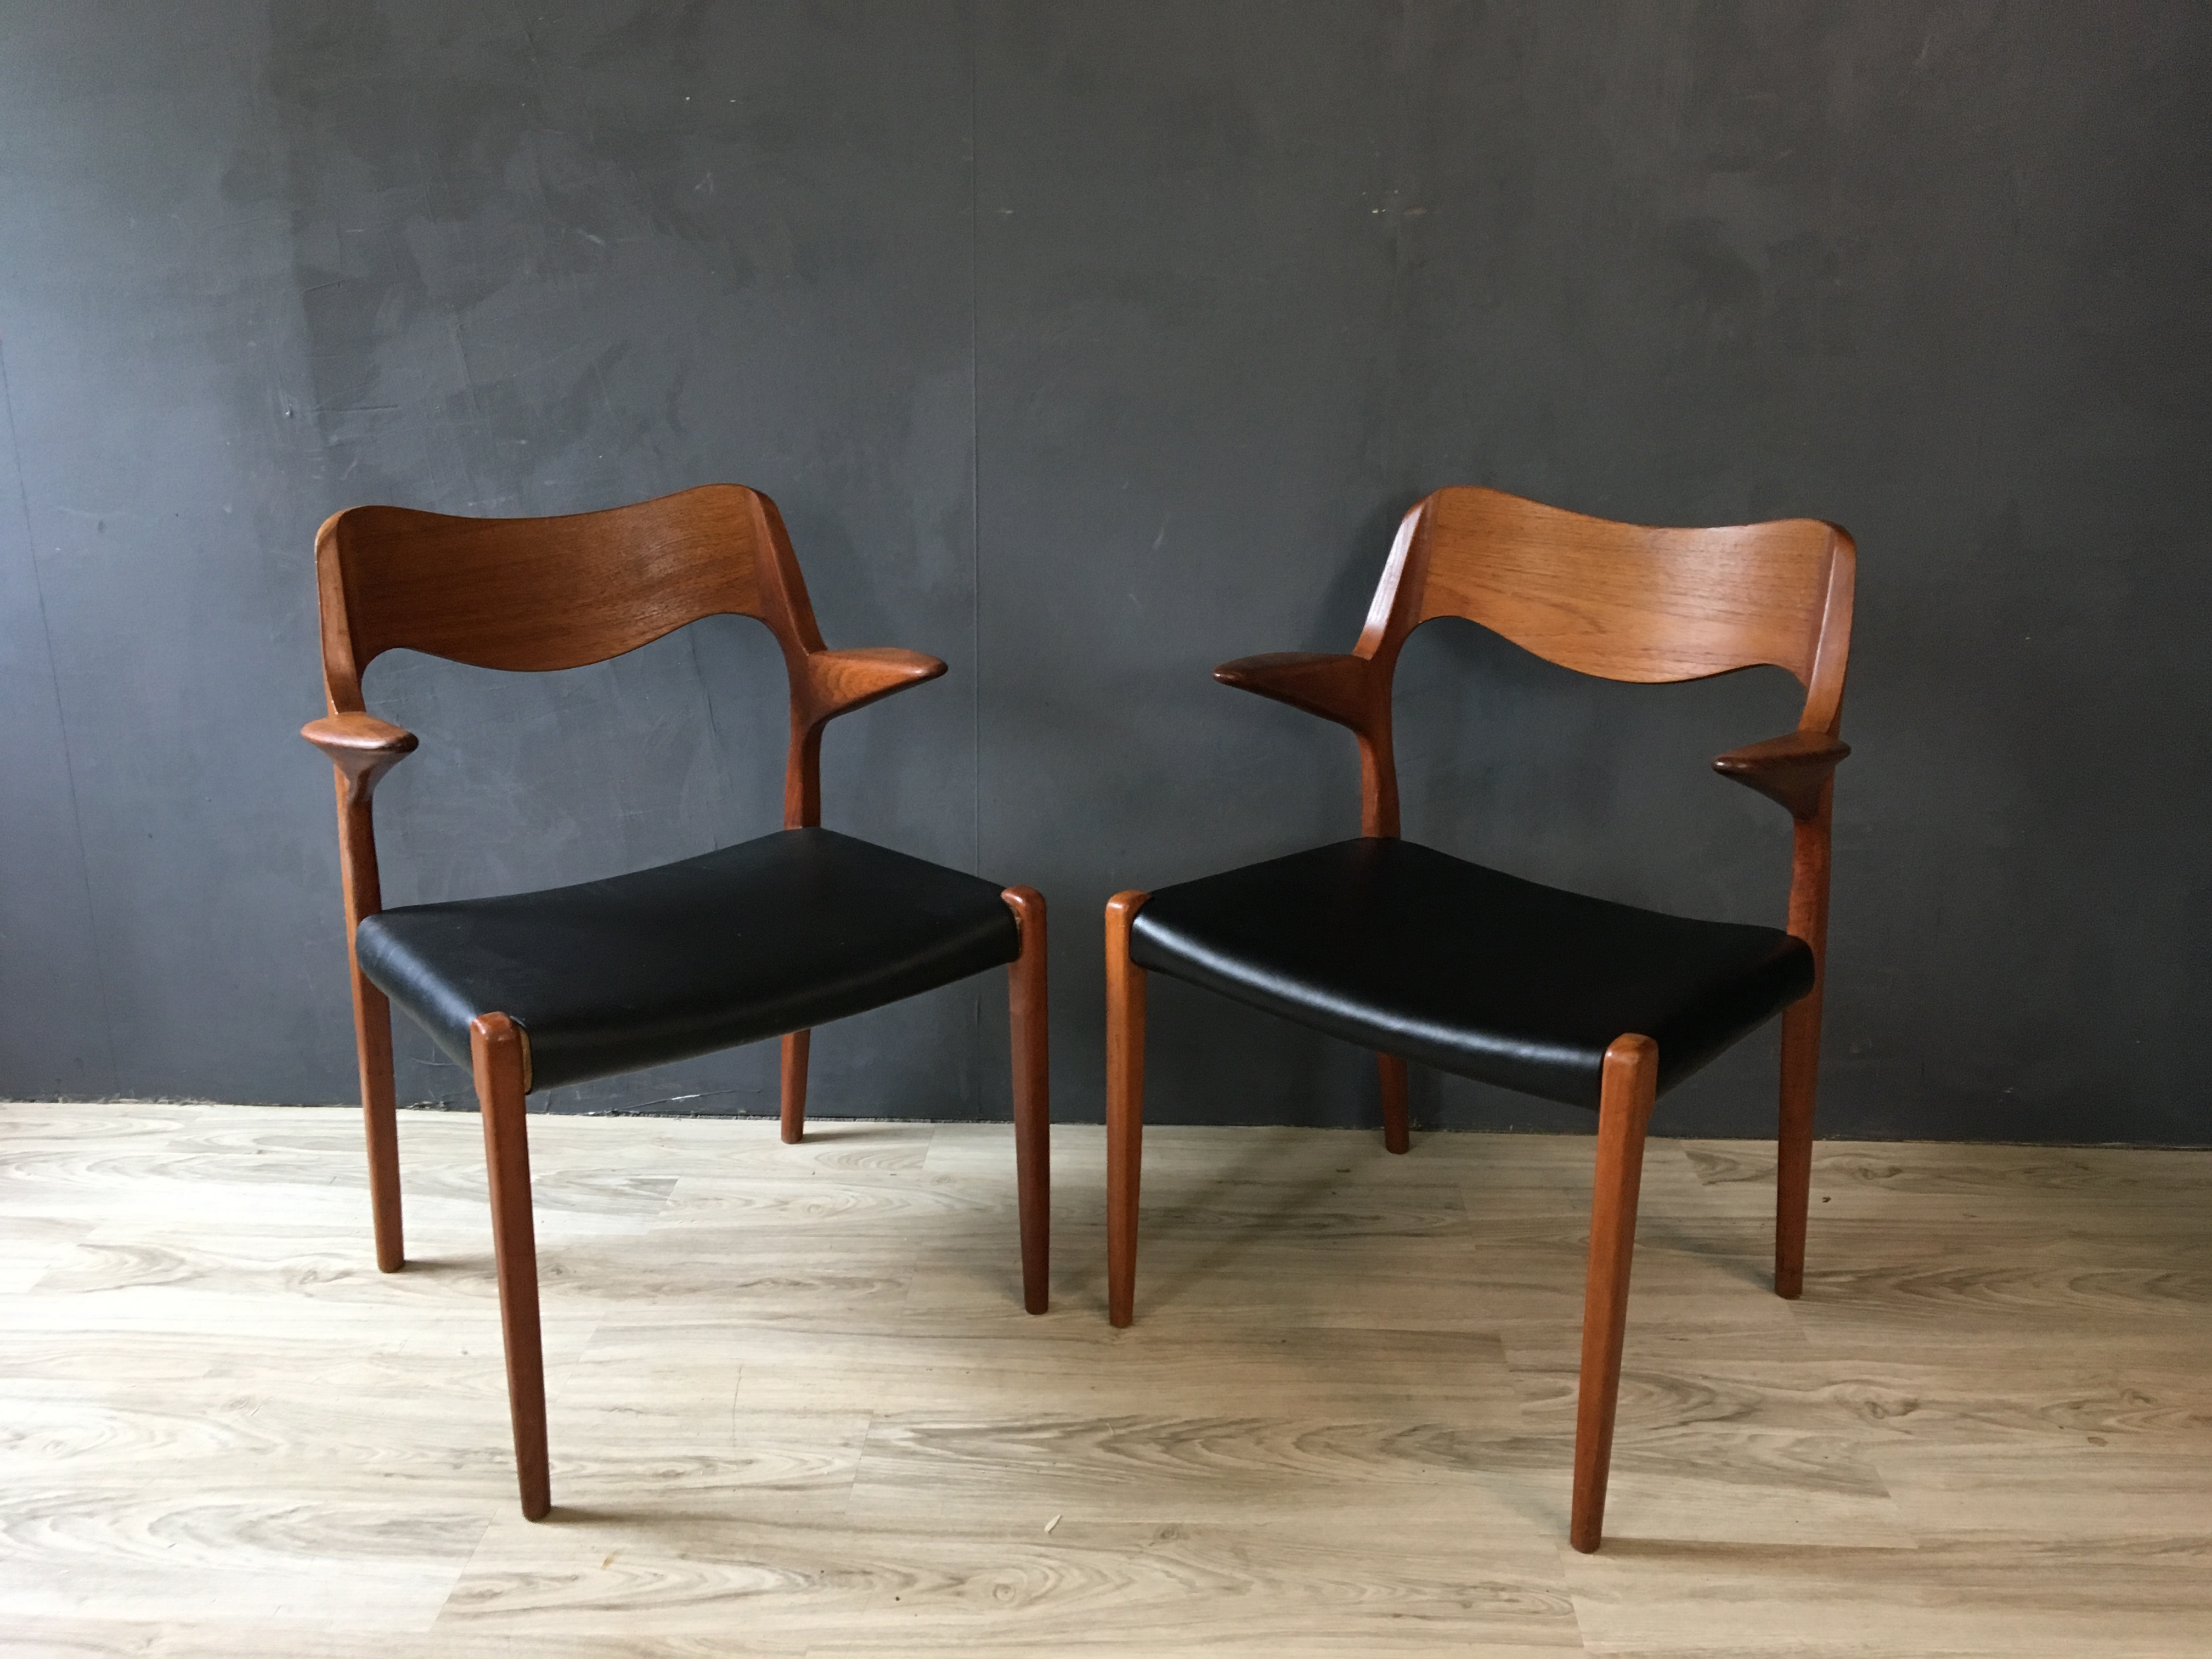 Pair of Danish Modern Niels Moller #55 Teak Armchairs